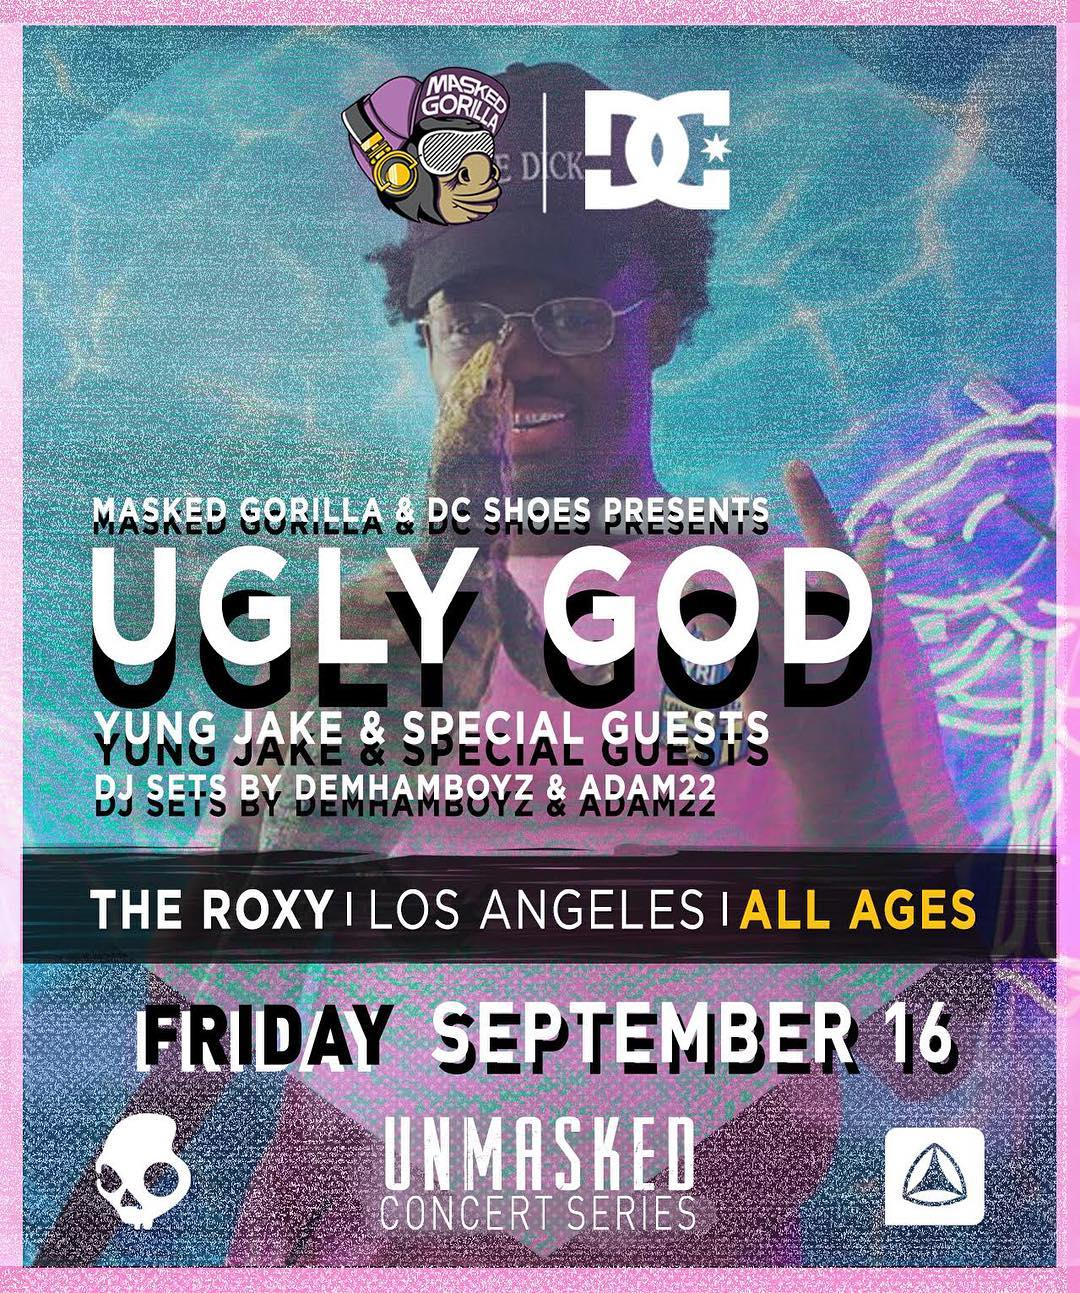 After 3 sold out shows the @maskedgorilla & DC @unmaskedla Concert Series will feature viral sensation @UglyGod at The Roxy on Friday, September 16th. Don't wait, get your tickets now at: UNMASKED.la #dcshoes